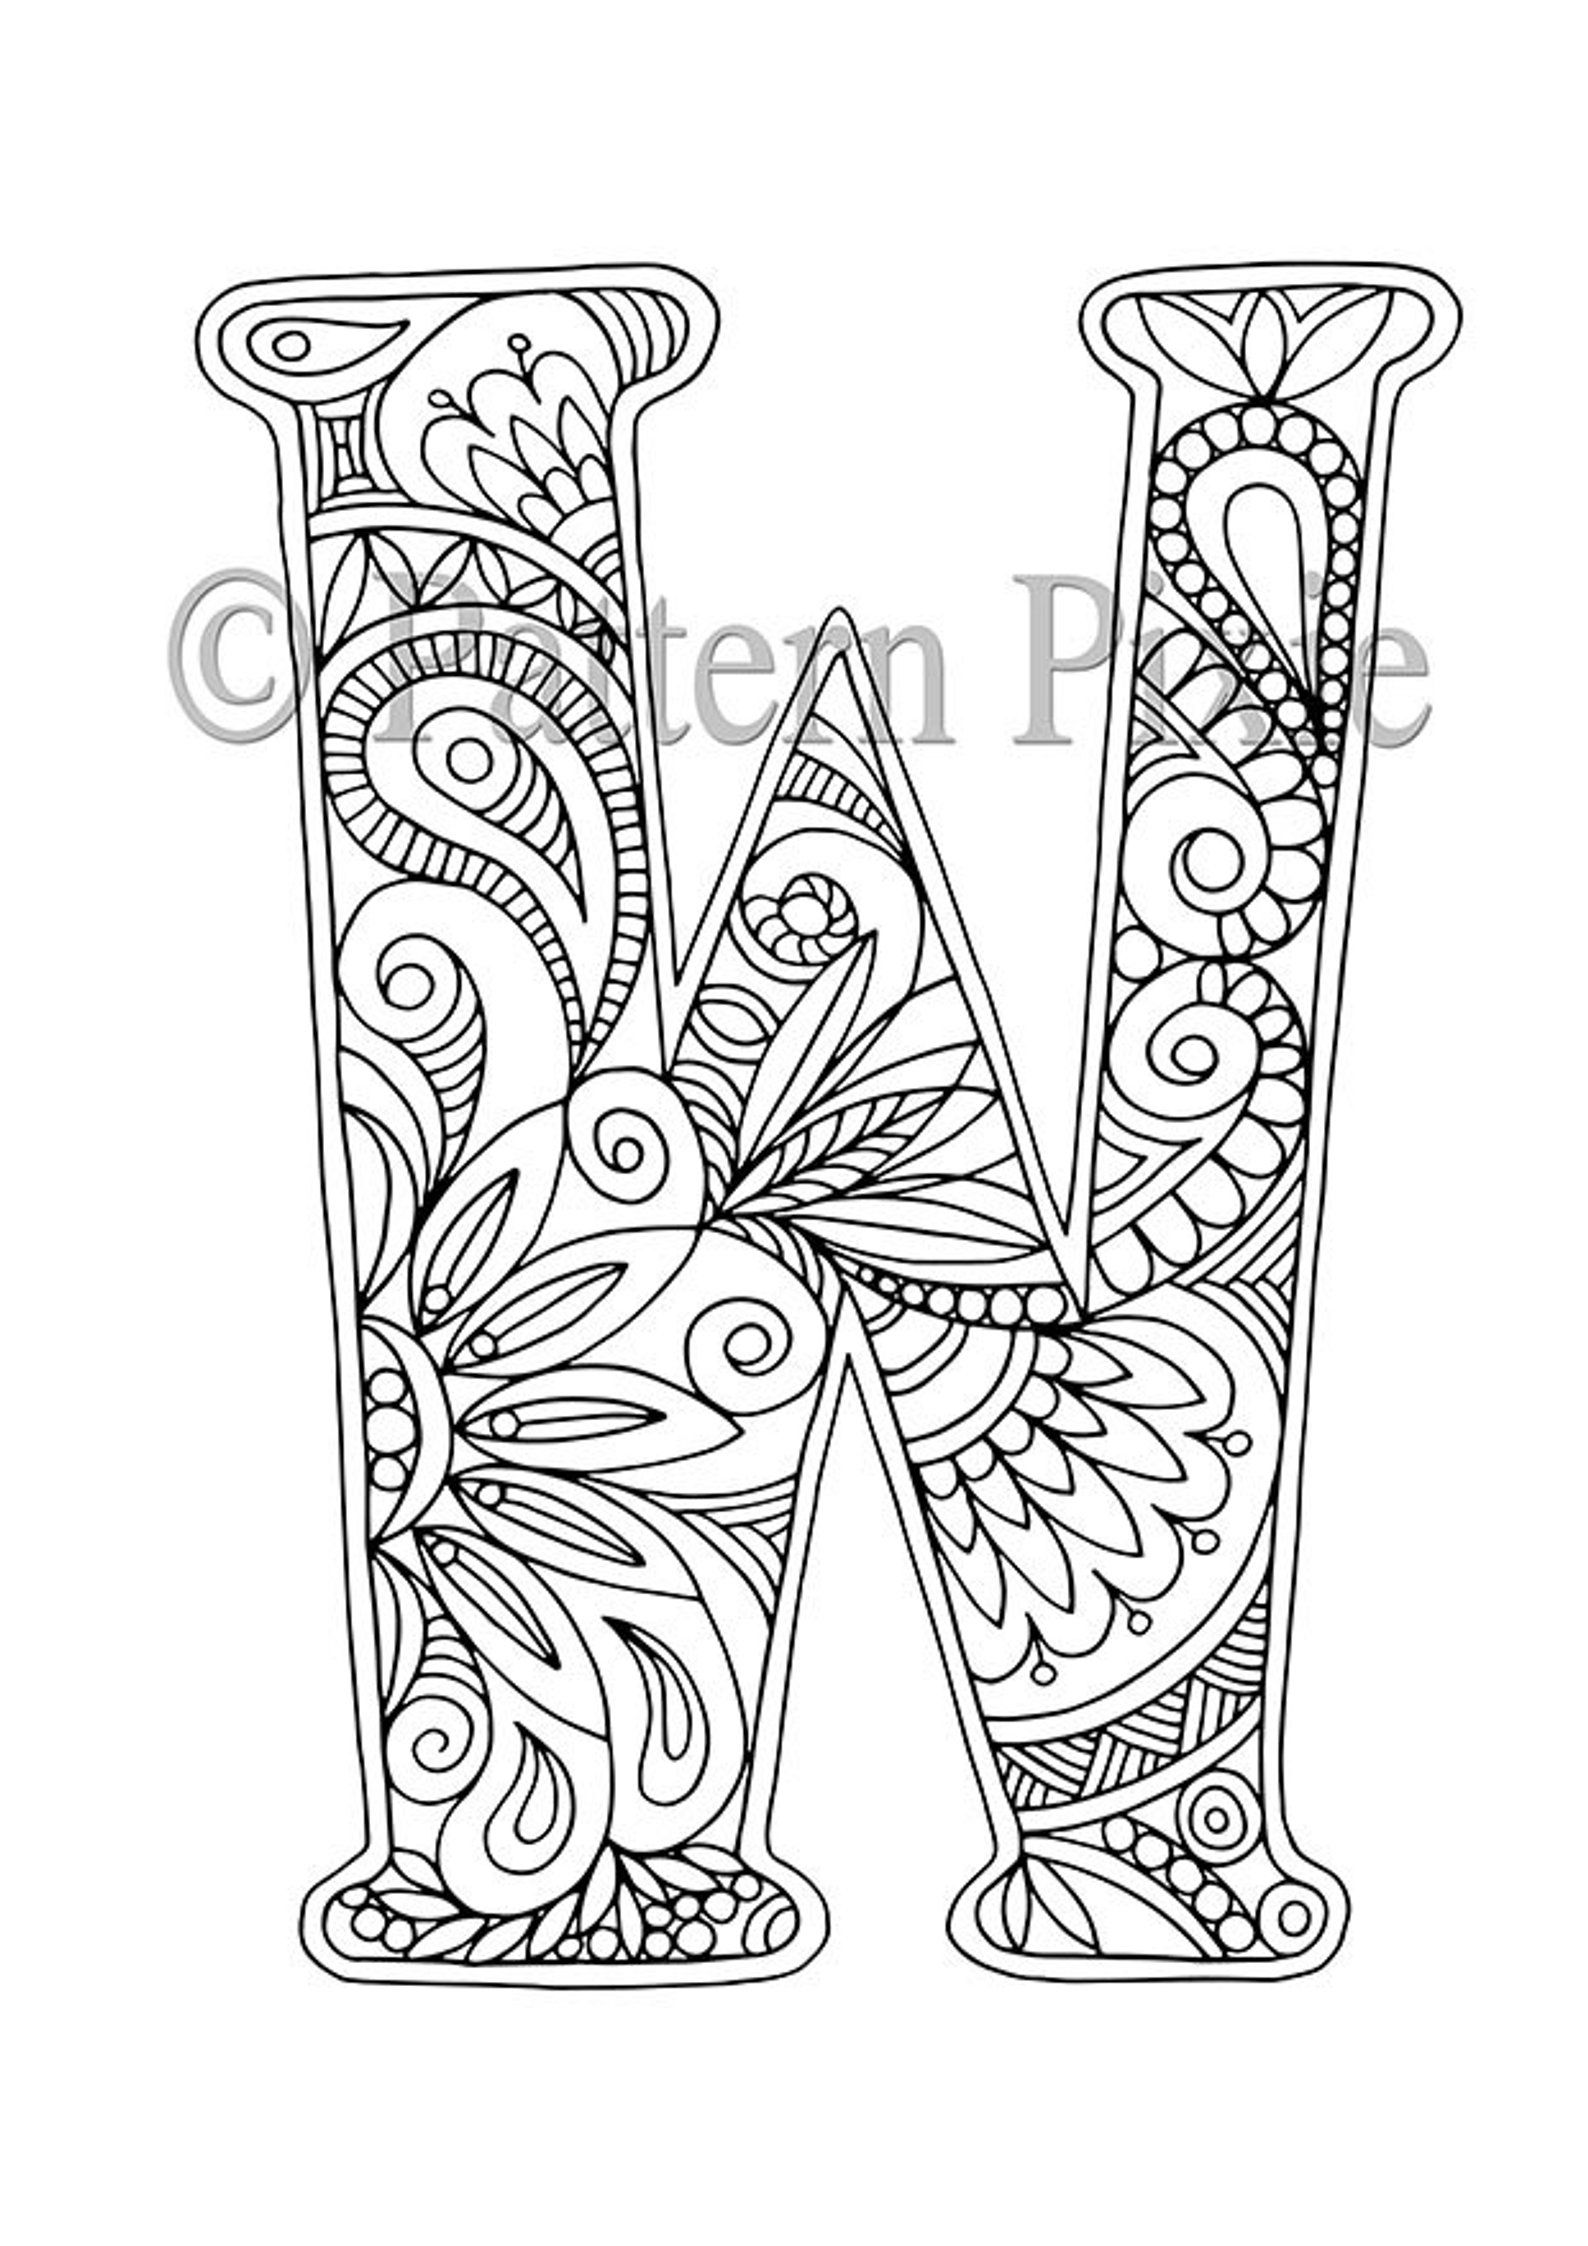 Alphabet Colouring Page For Adults Colouring Page For Digital Etsy Coloring Letters Lettering Alphabet Alphabet Coloring Pages